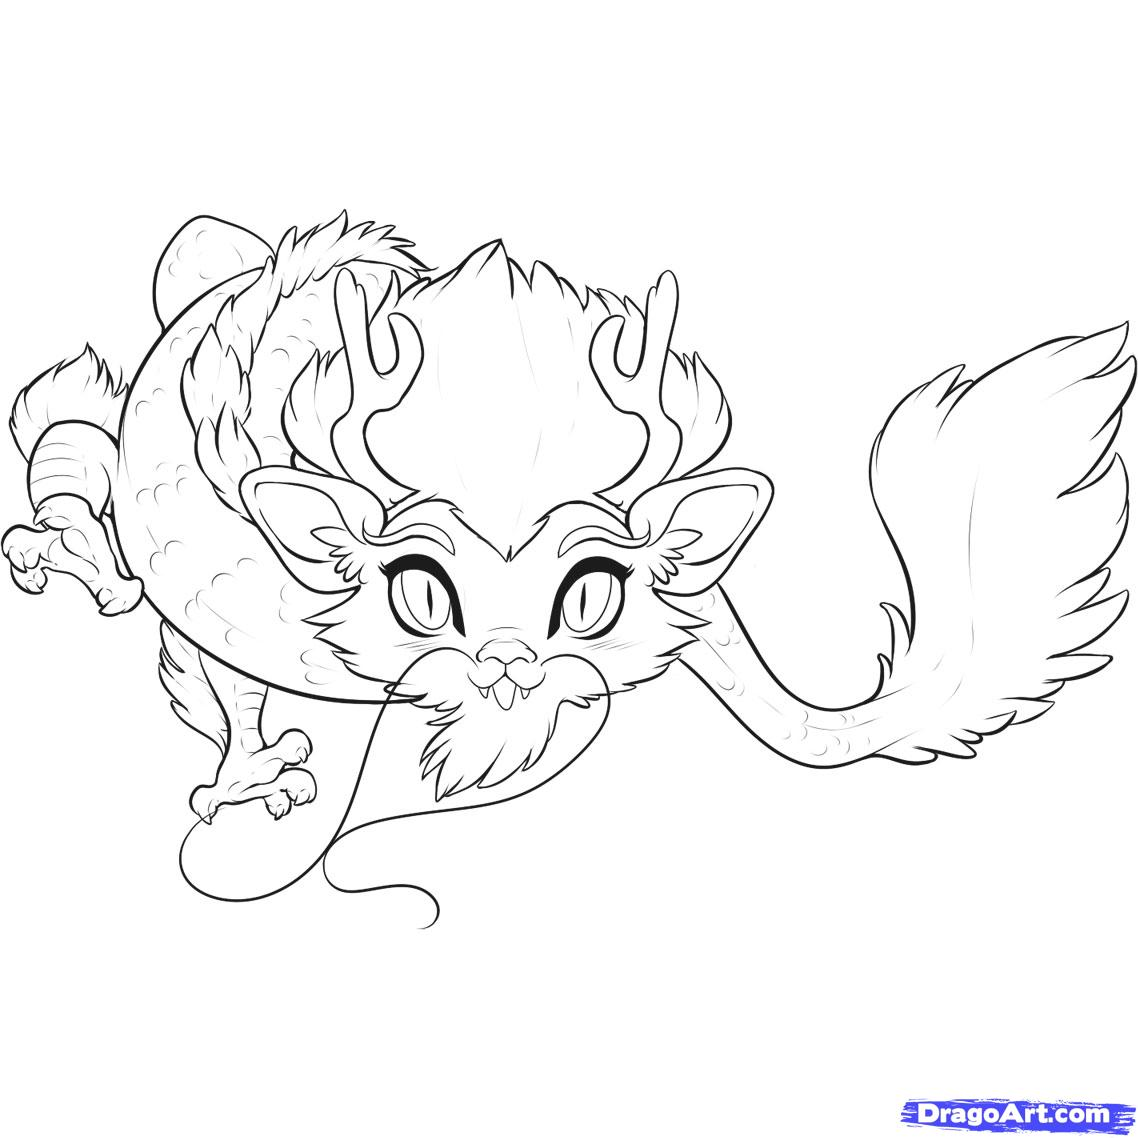 How To Draw A Chibi Chinese Dragon Step By Step Chibis